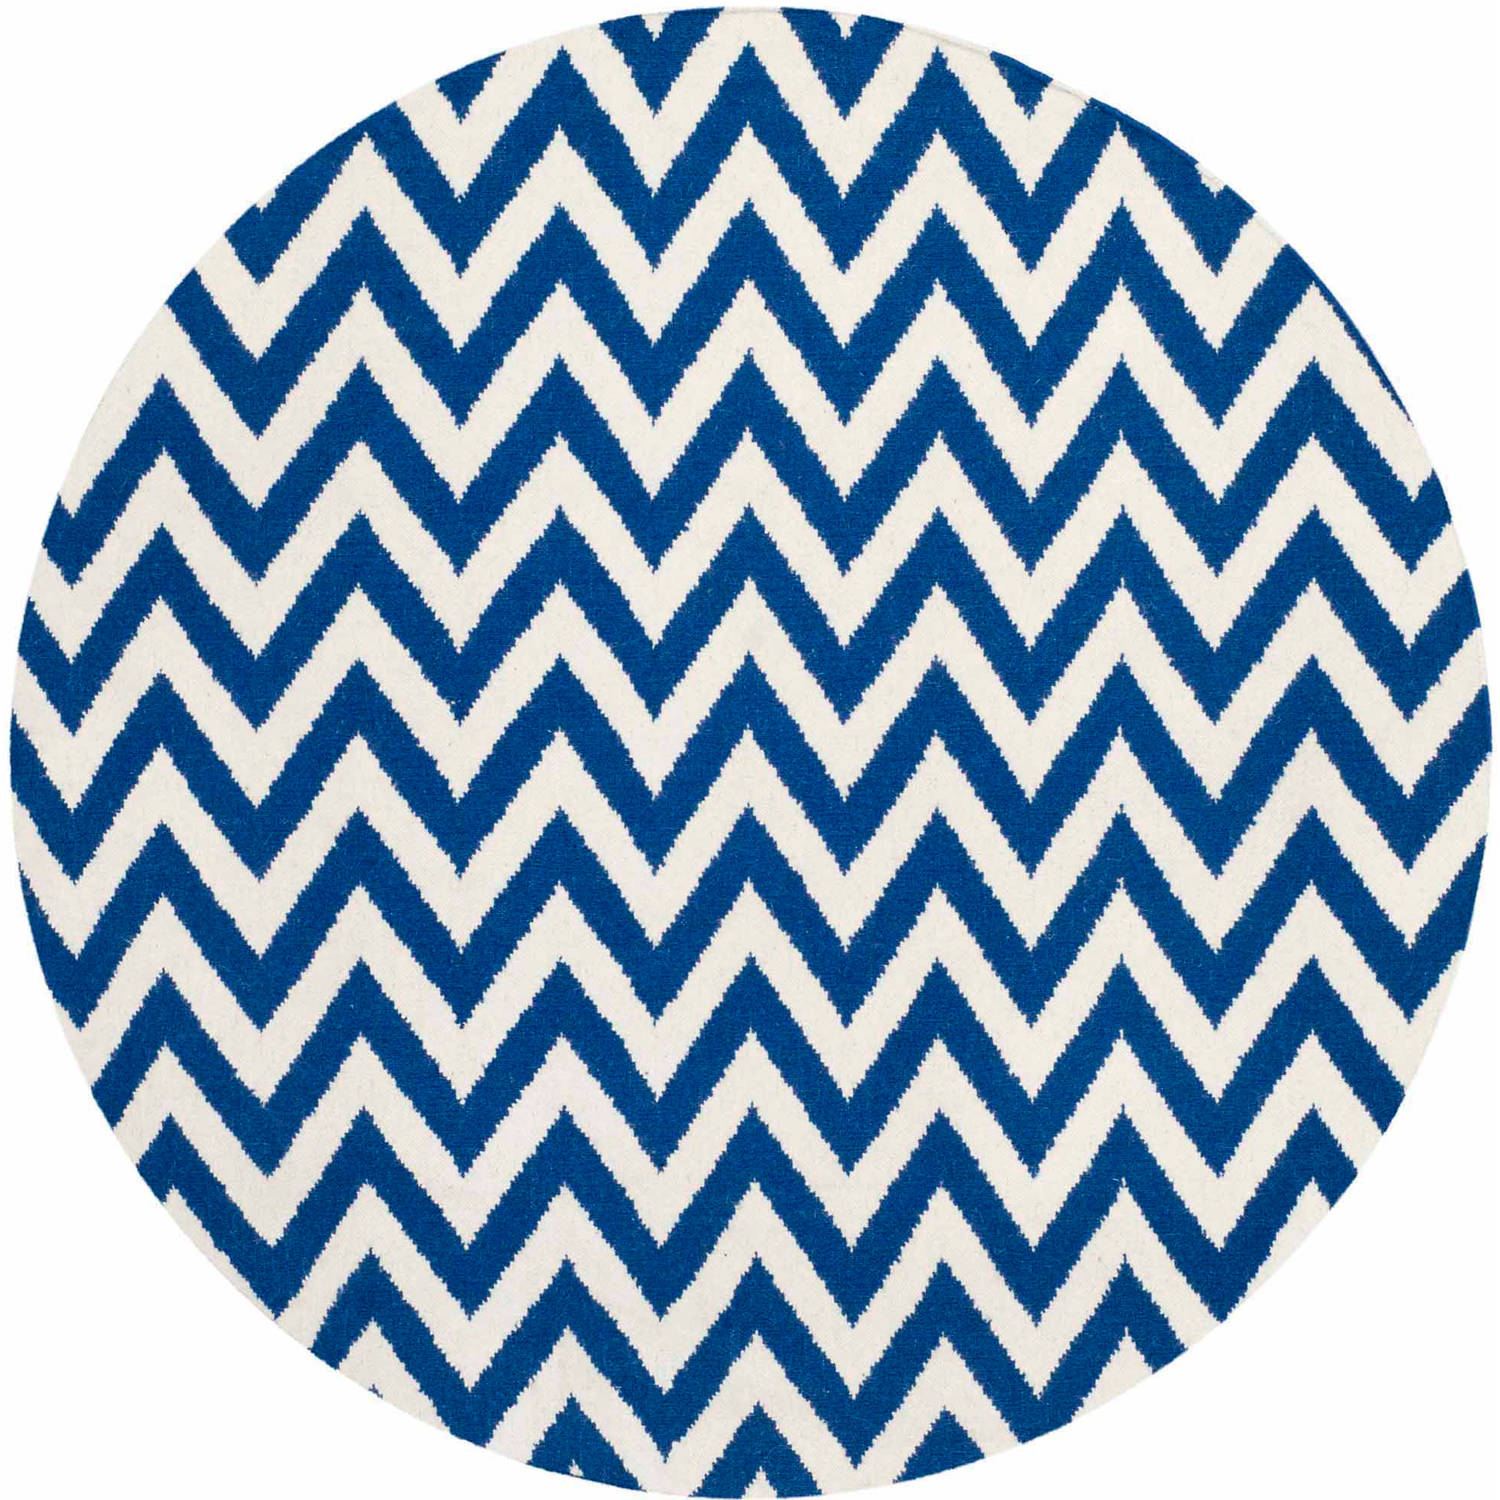 Safavieh Dhurrie Bentley Flatweave Chevron Wool Area Rug